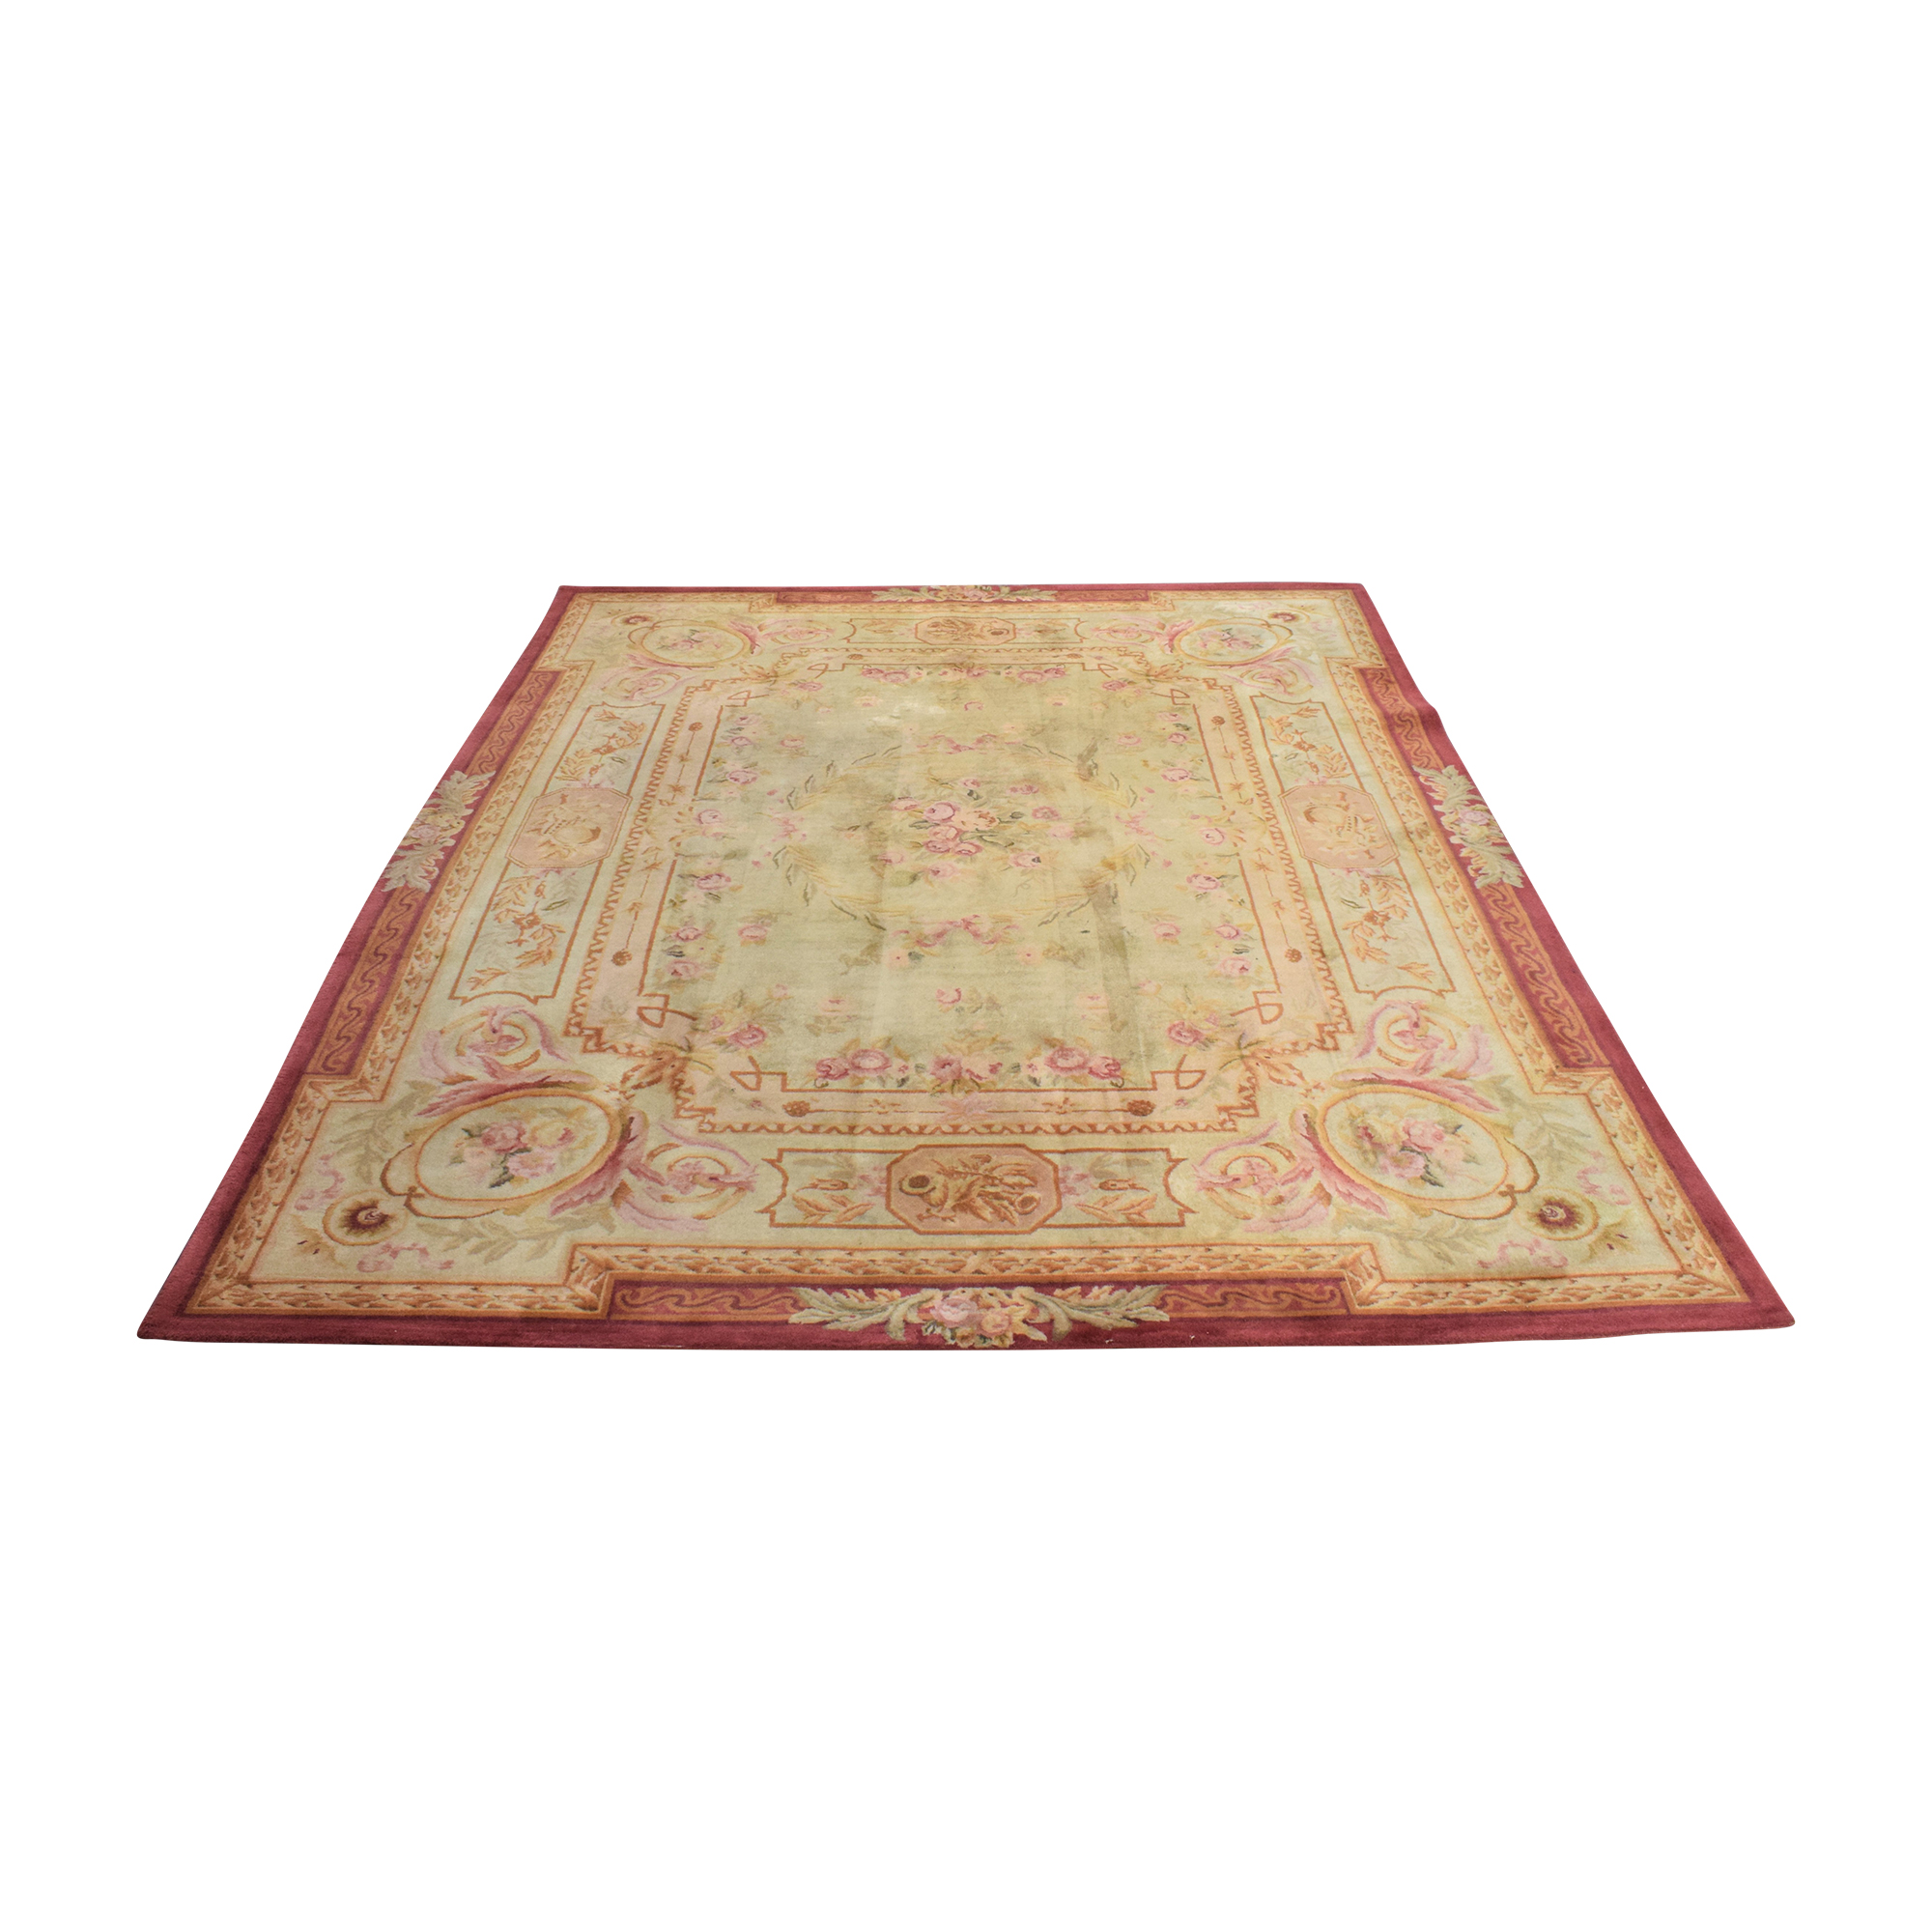 ABC Carpet & Home ABC Carpet & Home Savonery Rug Rugs